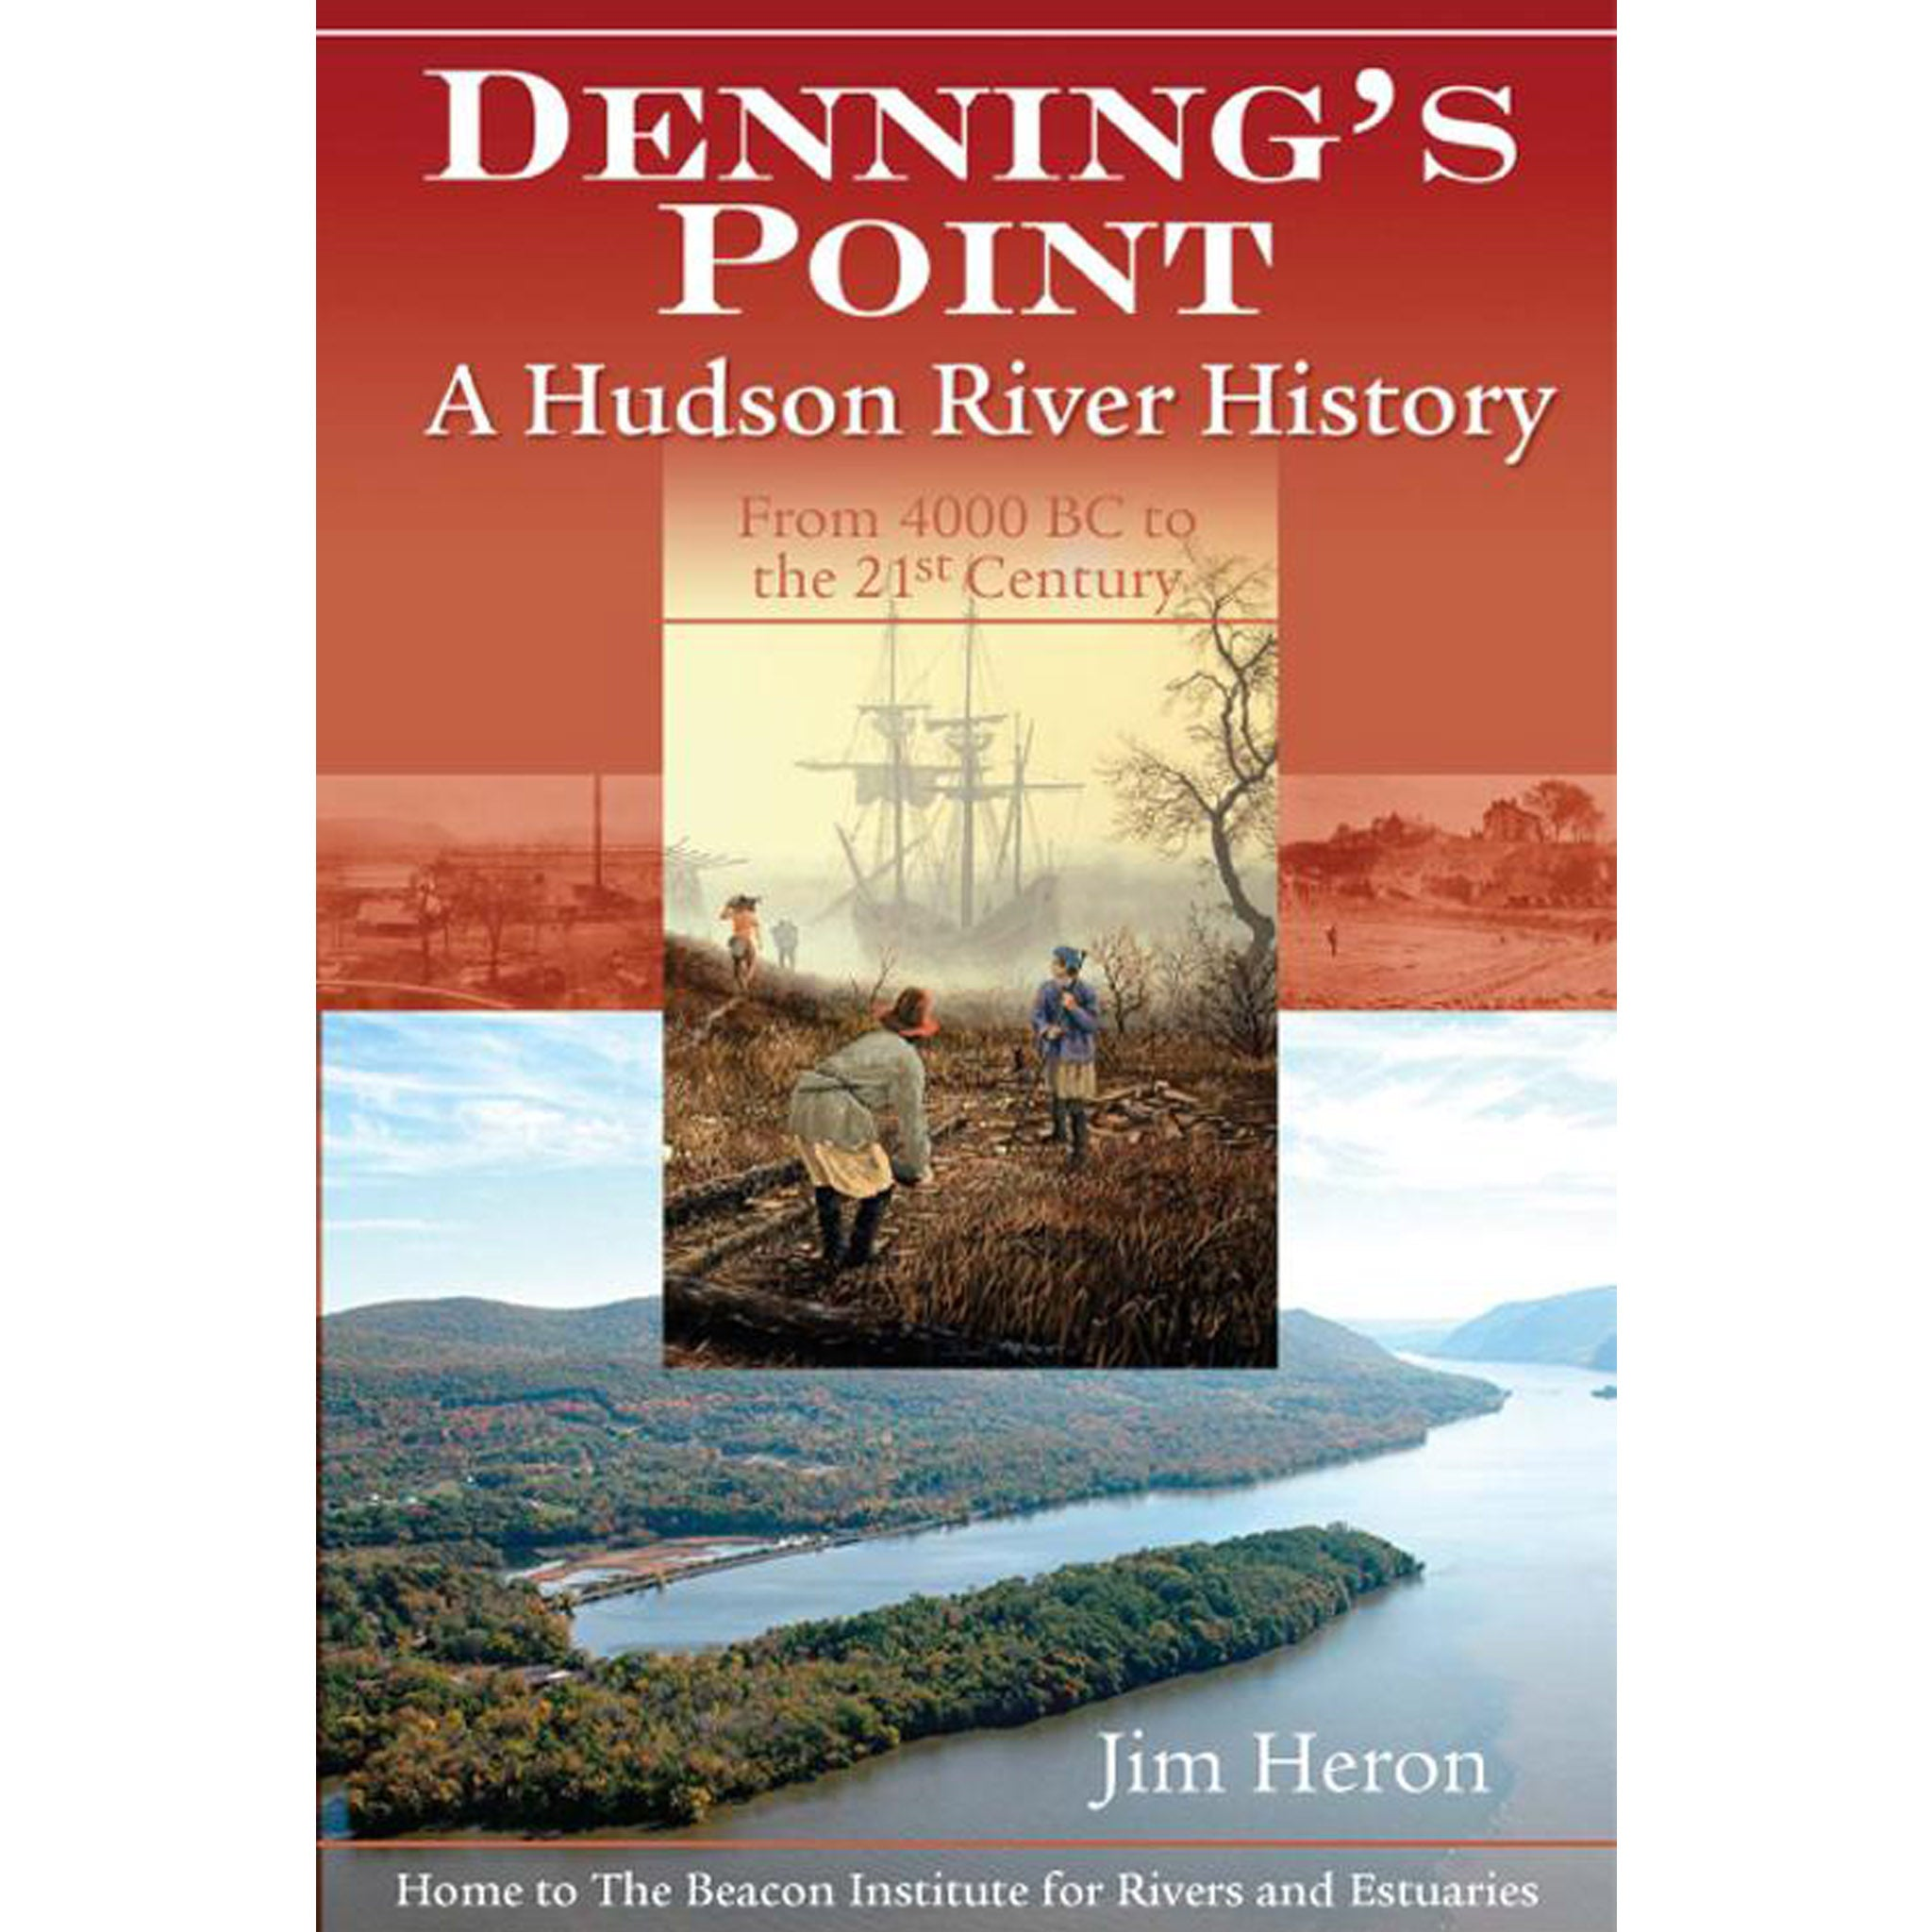 Denning's Point: A Hudson River History